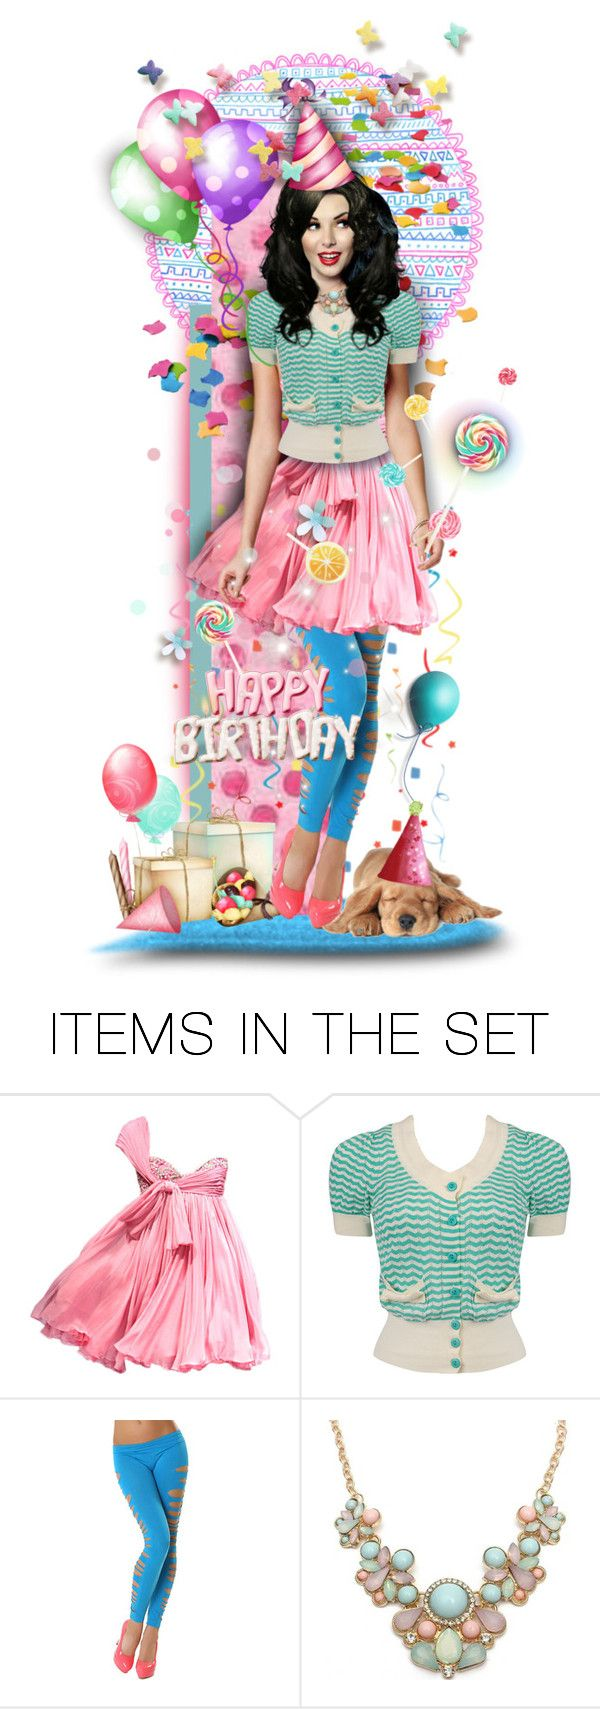 """Happy Birthday!"" by tracireuer ❤ liked on Polyvore featuring arte"